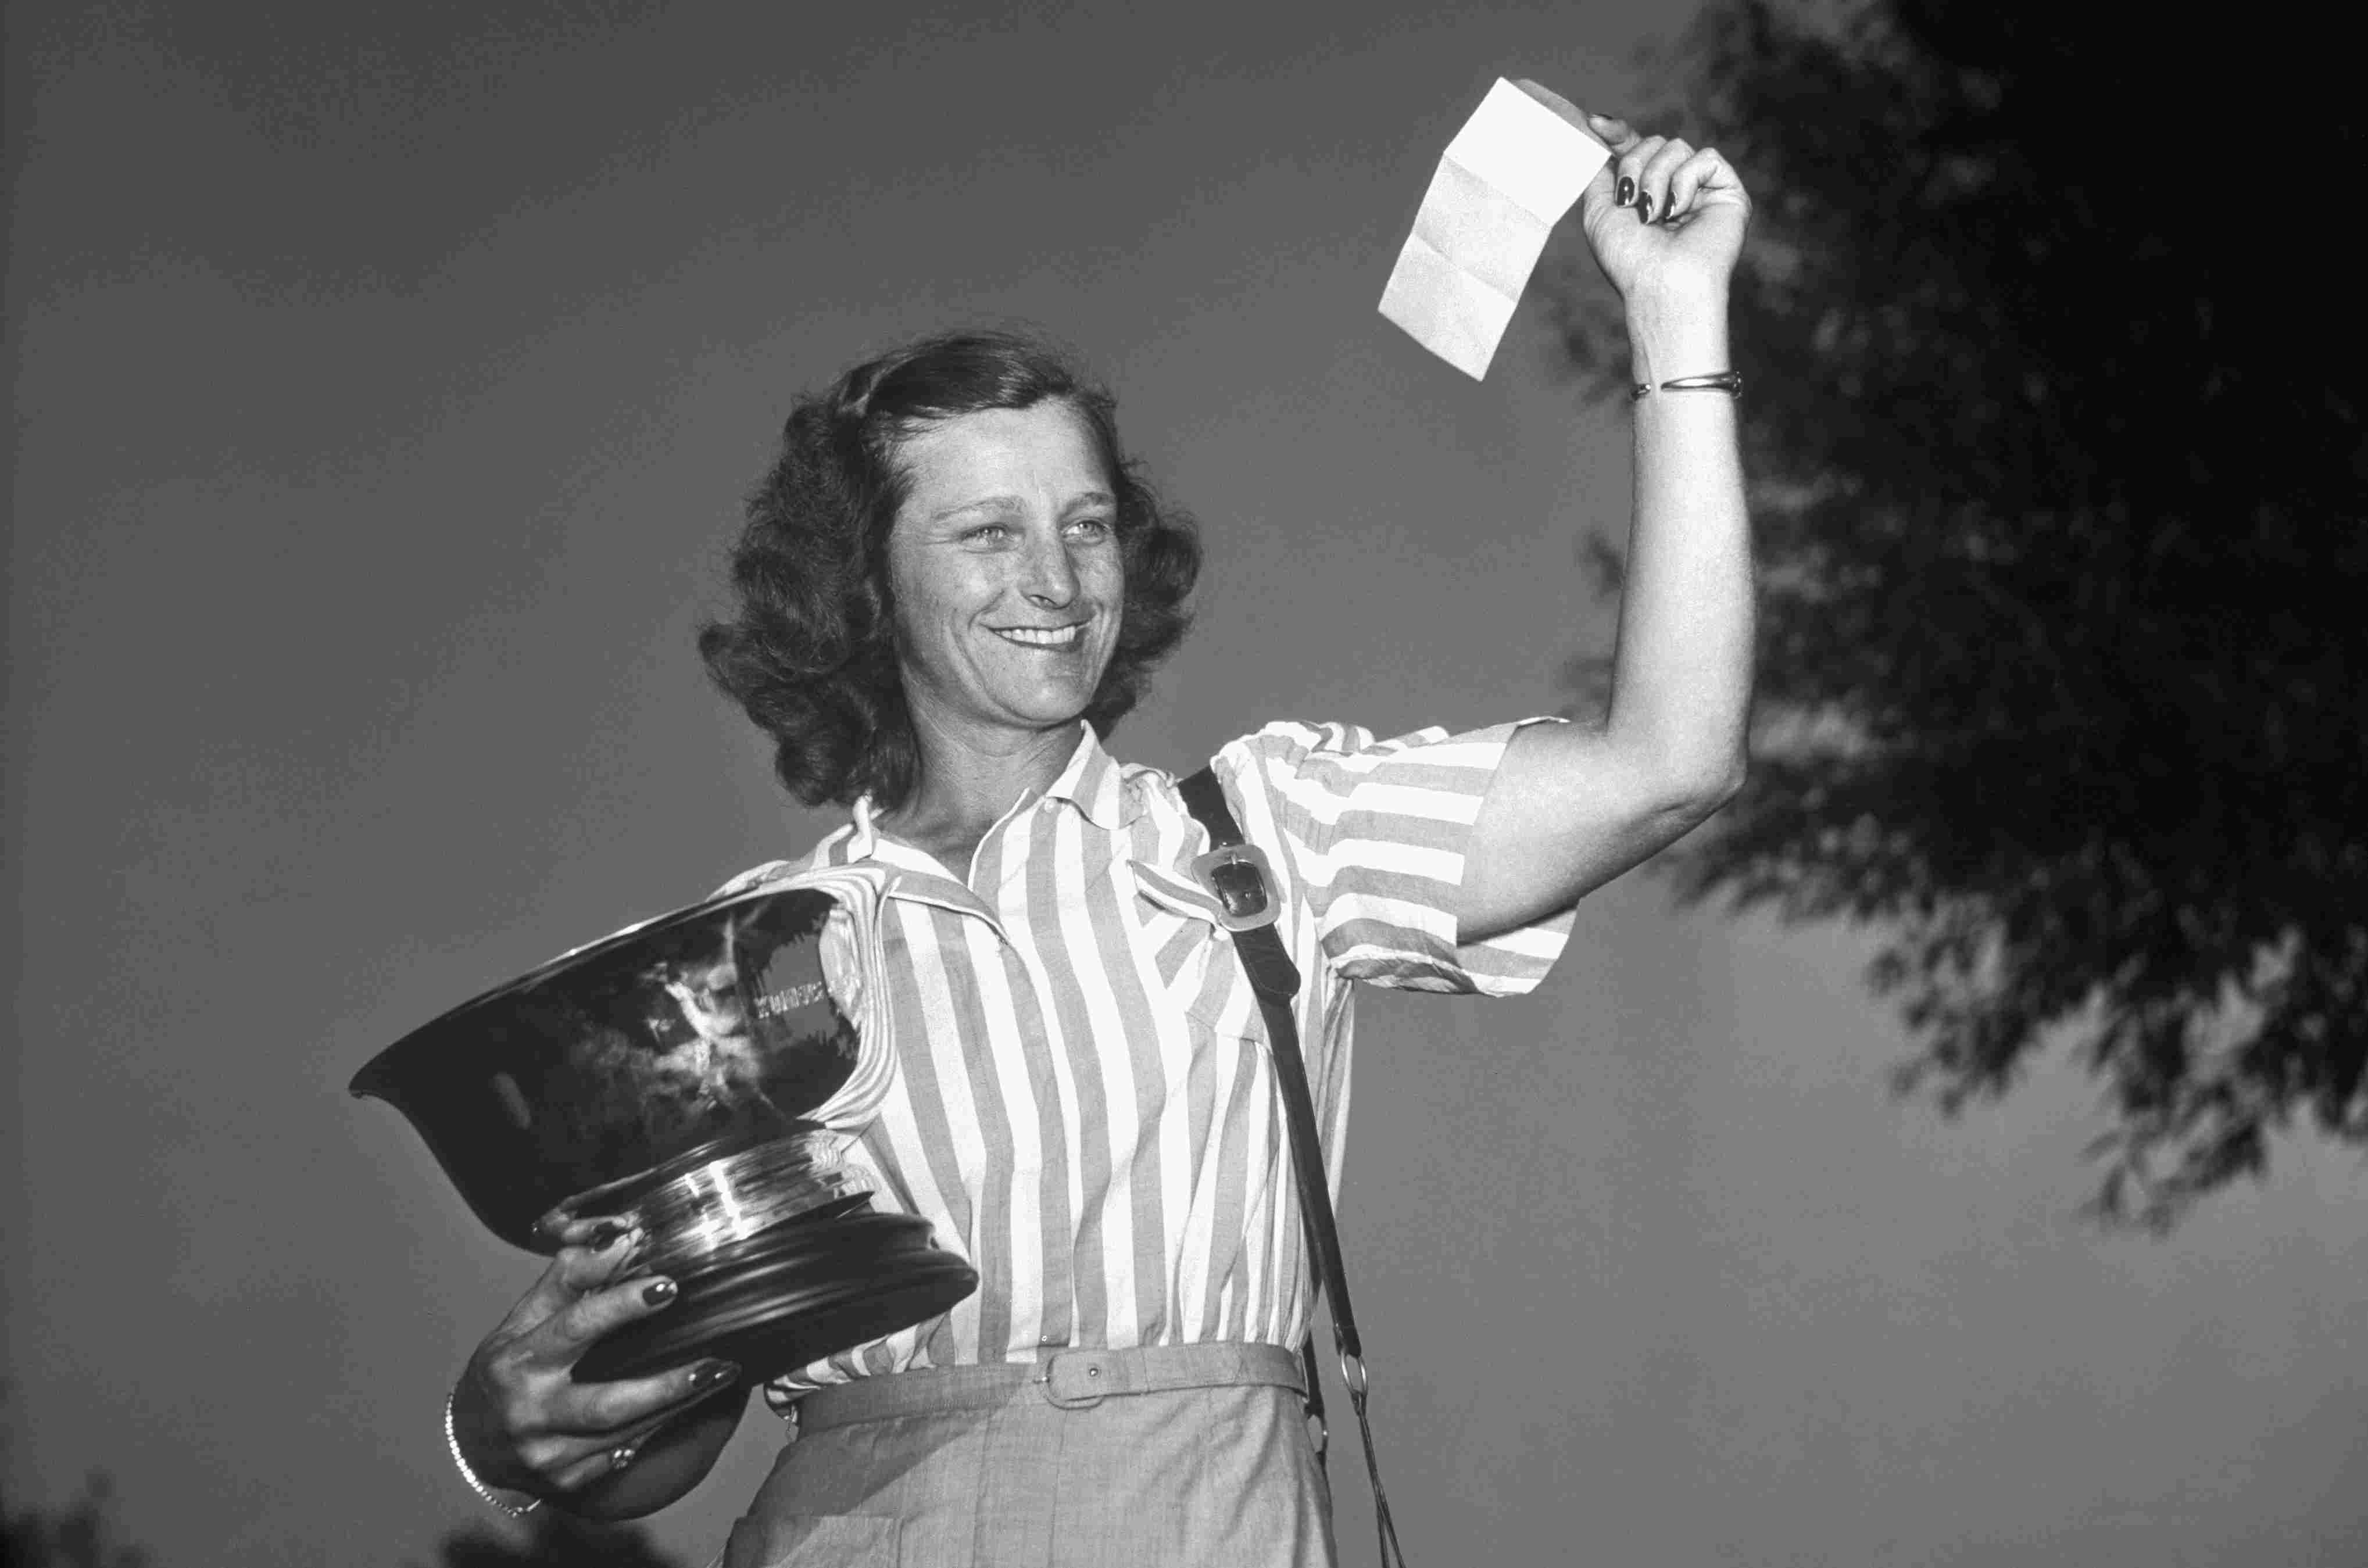 Babe Didrikson Zaharias after winning one of her U.S. Women's Open titles